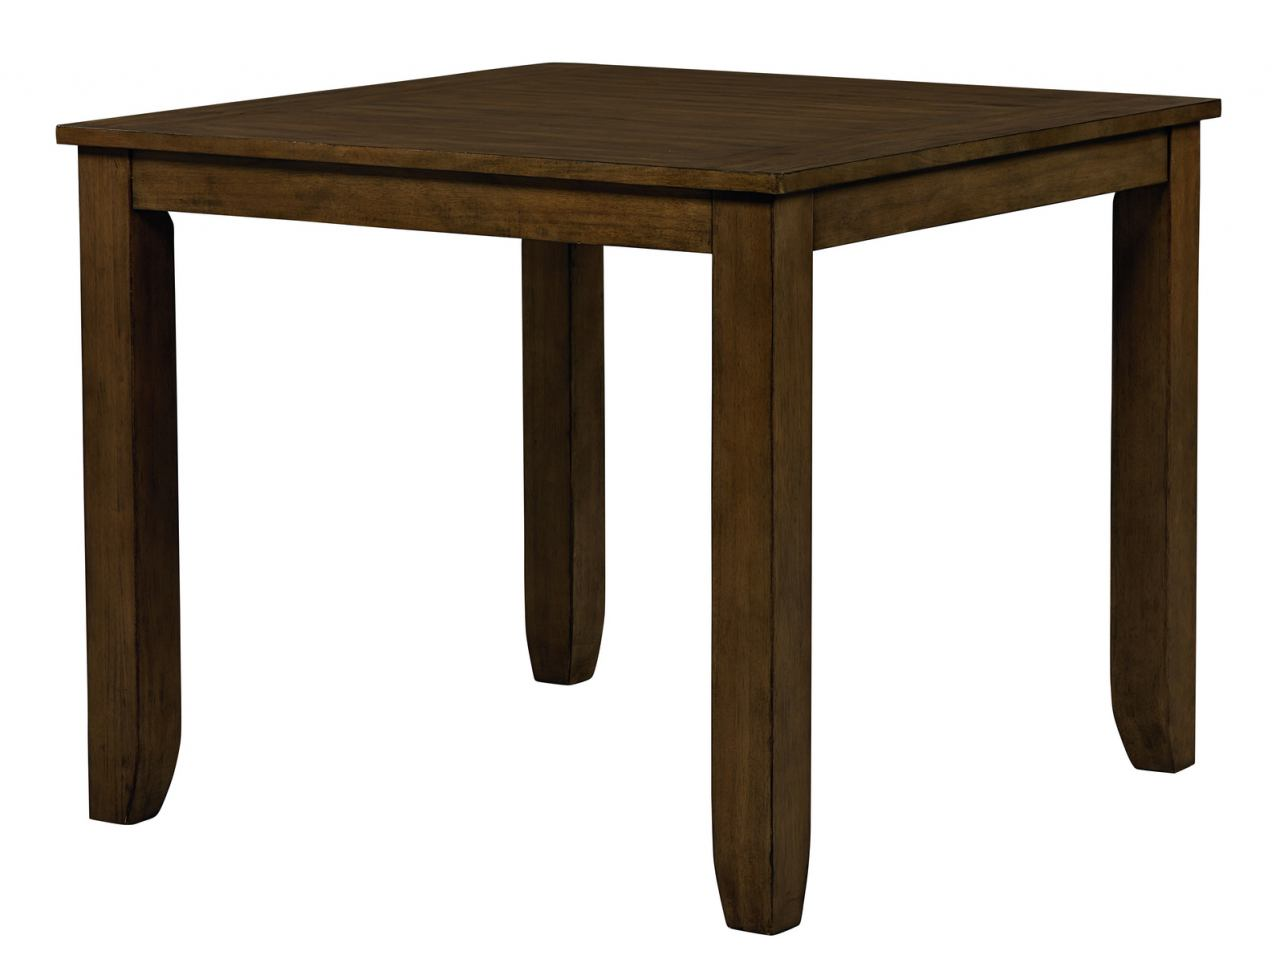 Standard Furniture Vintage Counter Height Table in Grey 11326